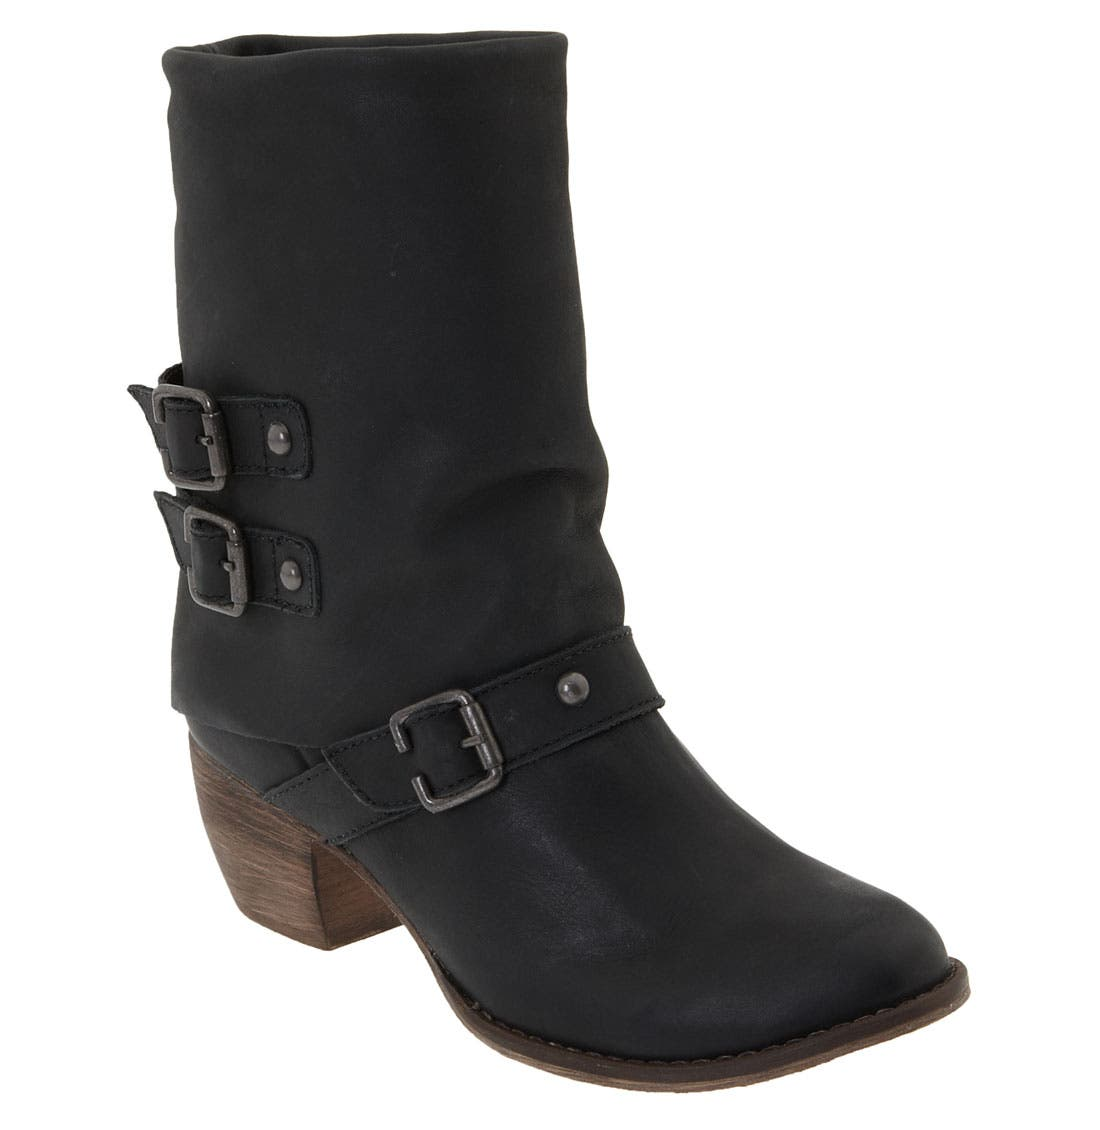 Alternate Image 1 Selected - MIA Limited Edition 'Buckaroo' Ankle Boot